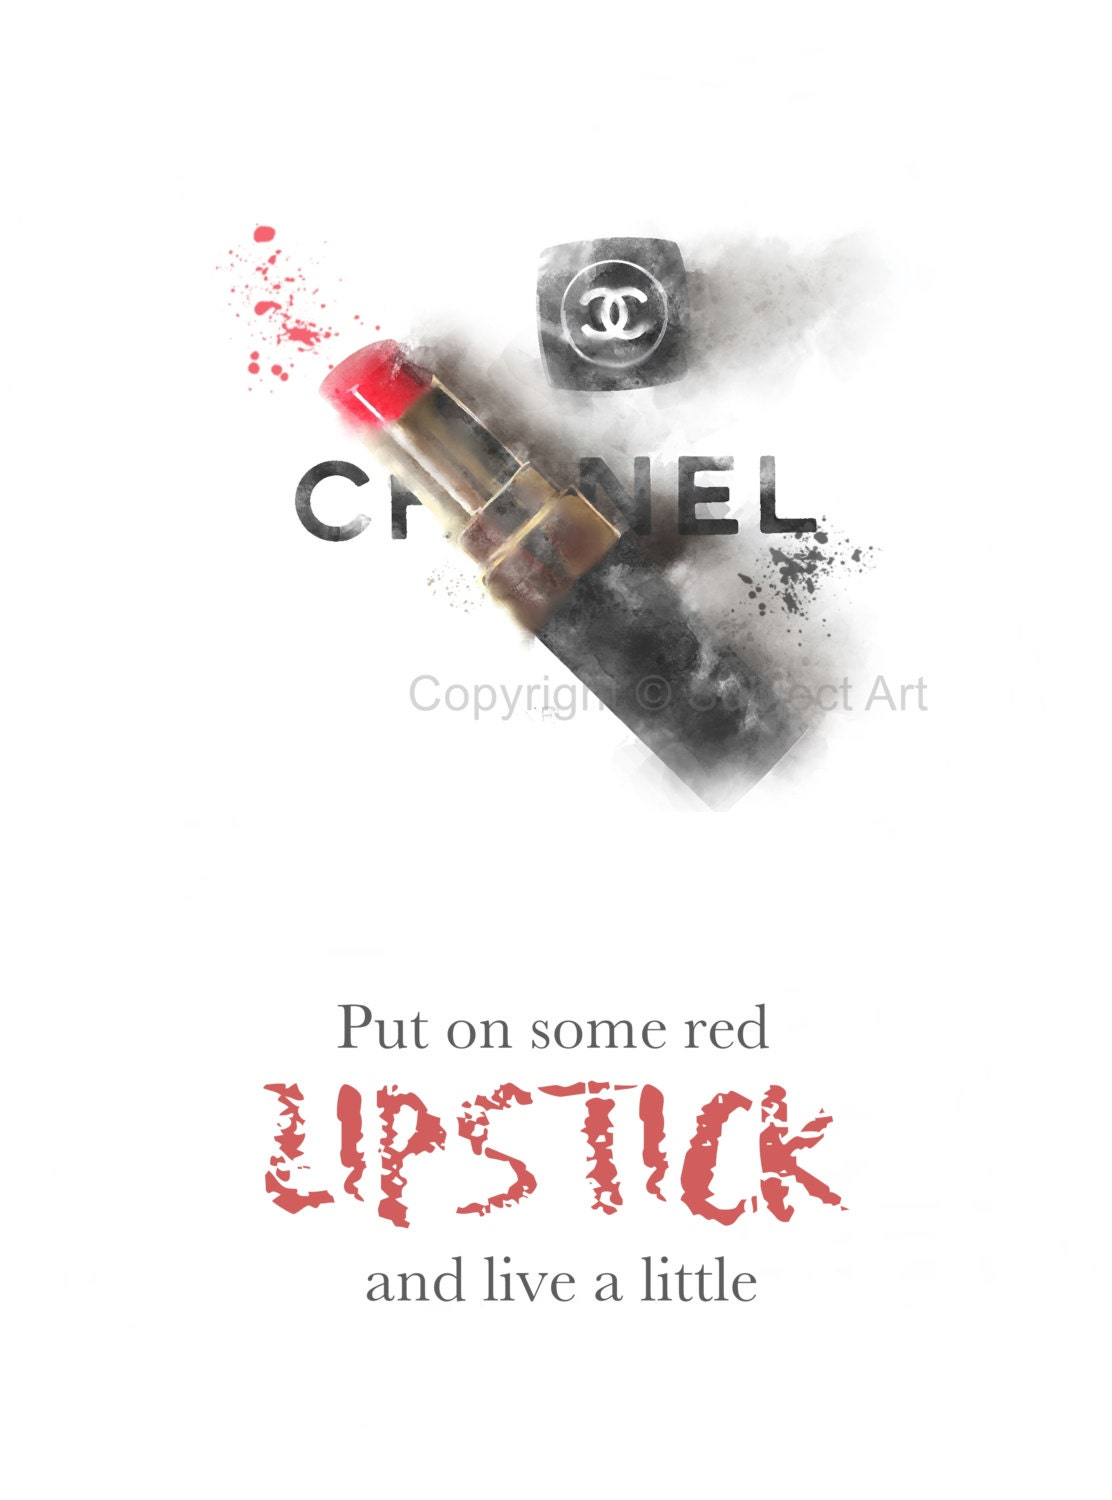 Lipstick Quotes Art Print Chanel Lipstick Fashion Quote 'put On Some Red